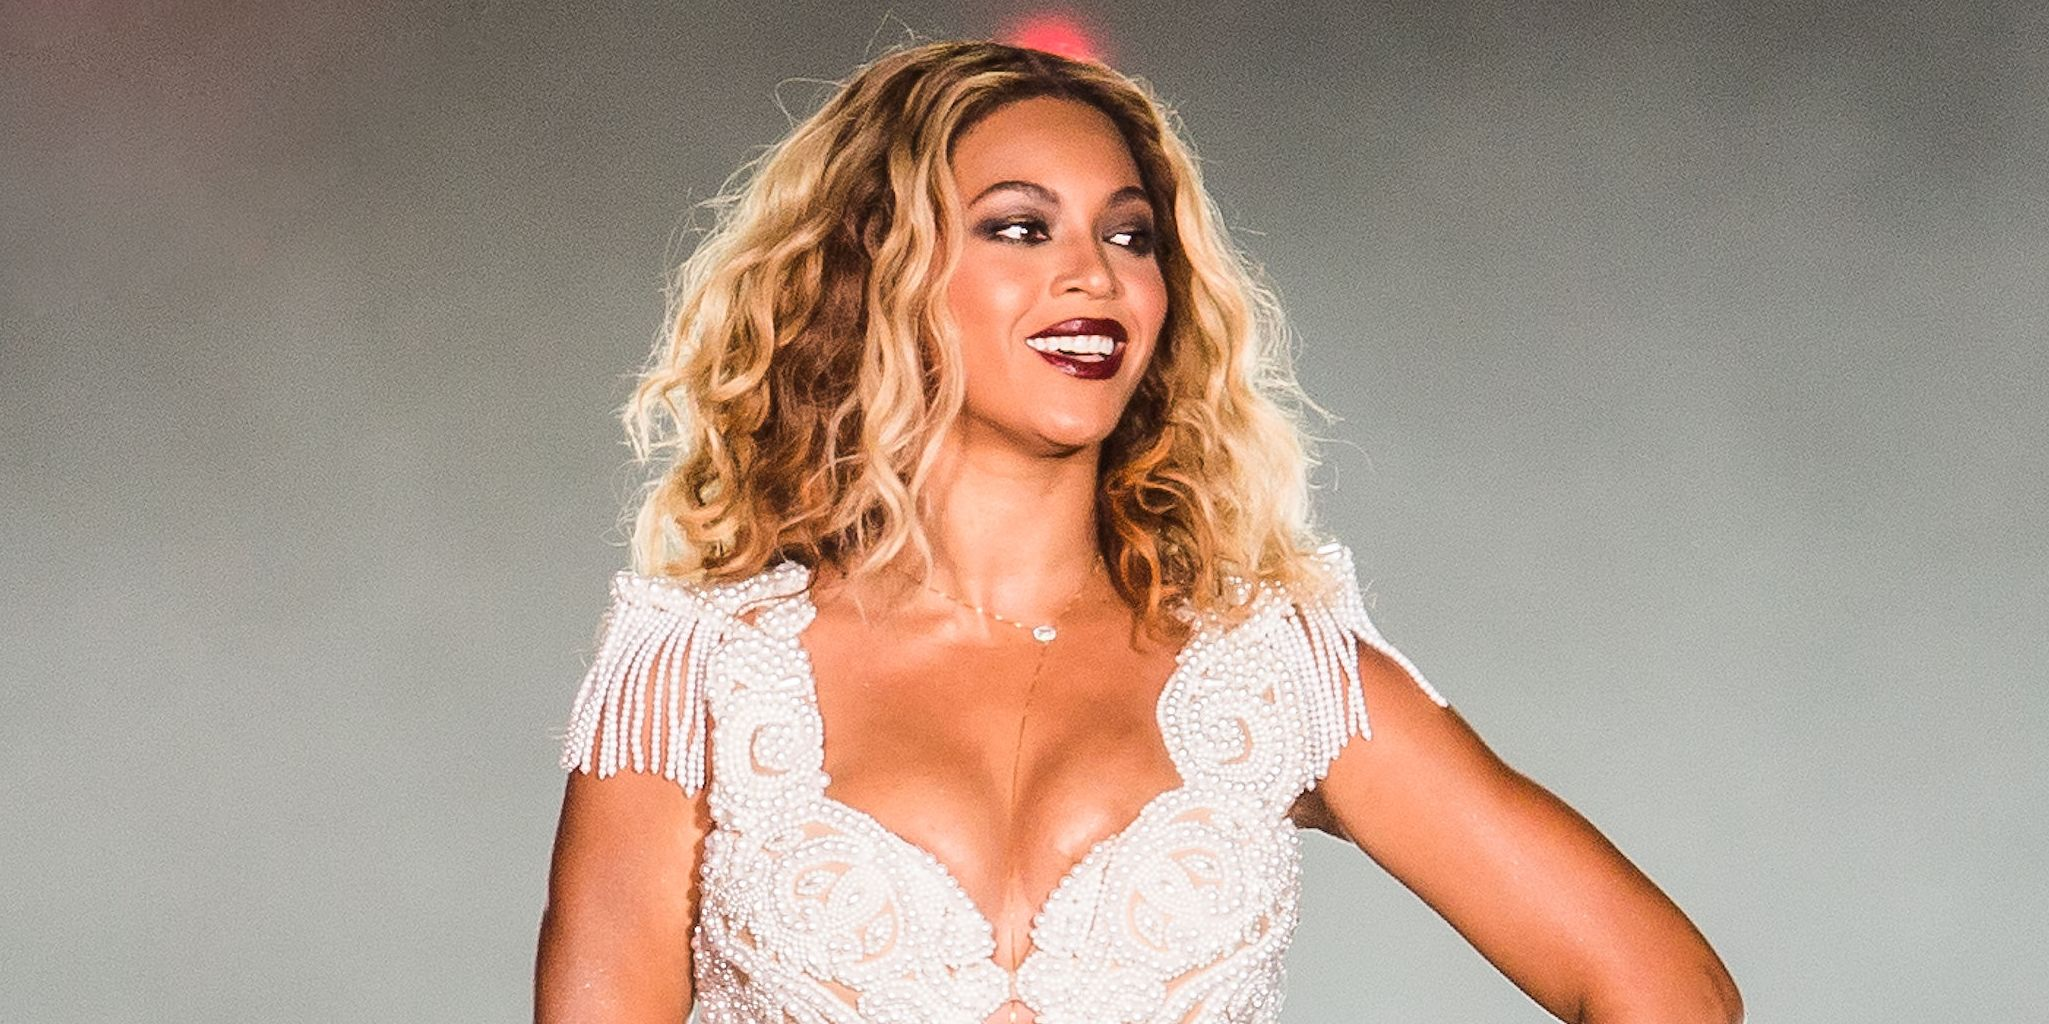 The Man Who Got Beyoncé to Perform at His Daughter's Wedding Is Worth $47 Billion